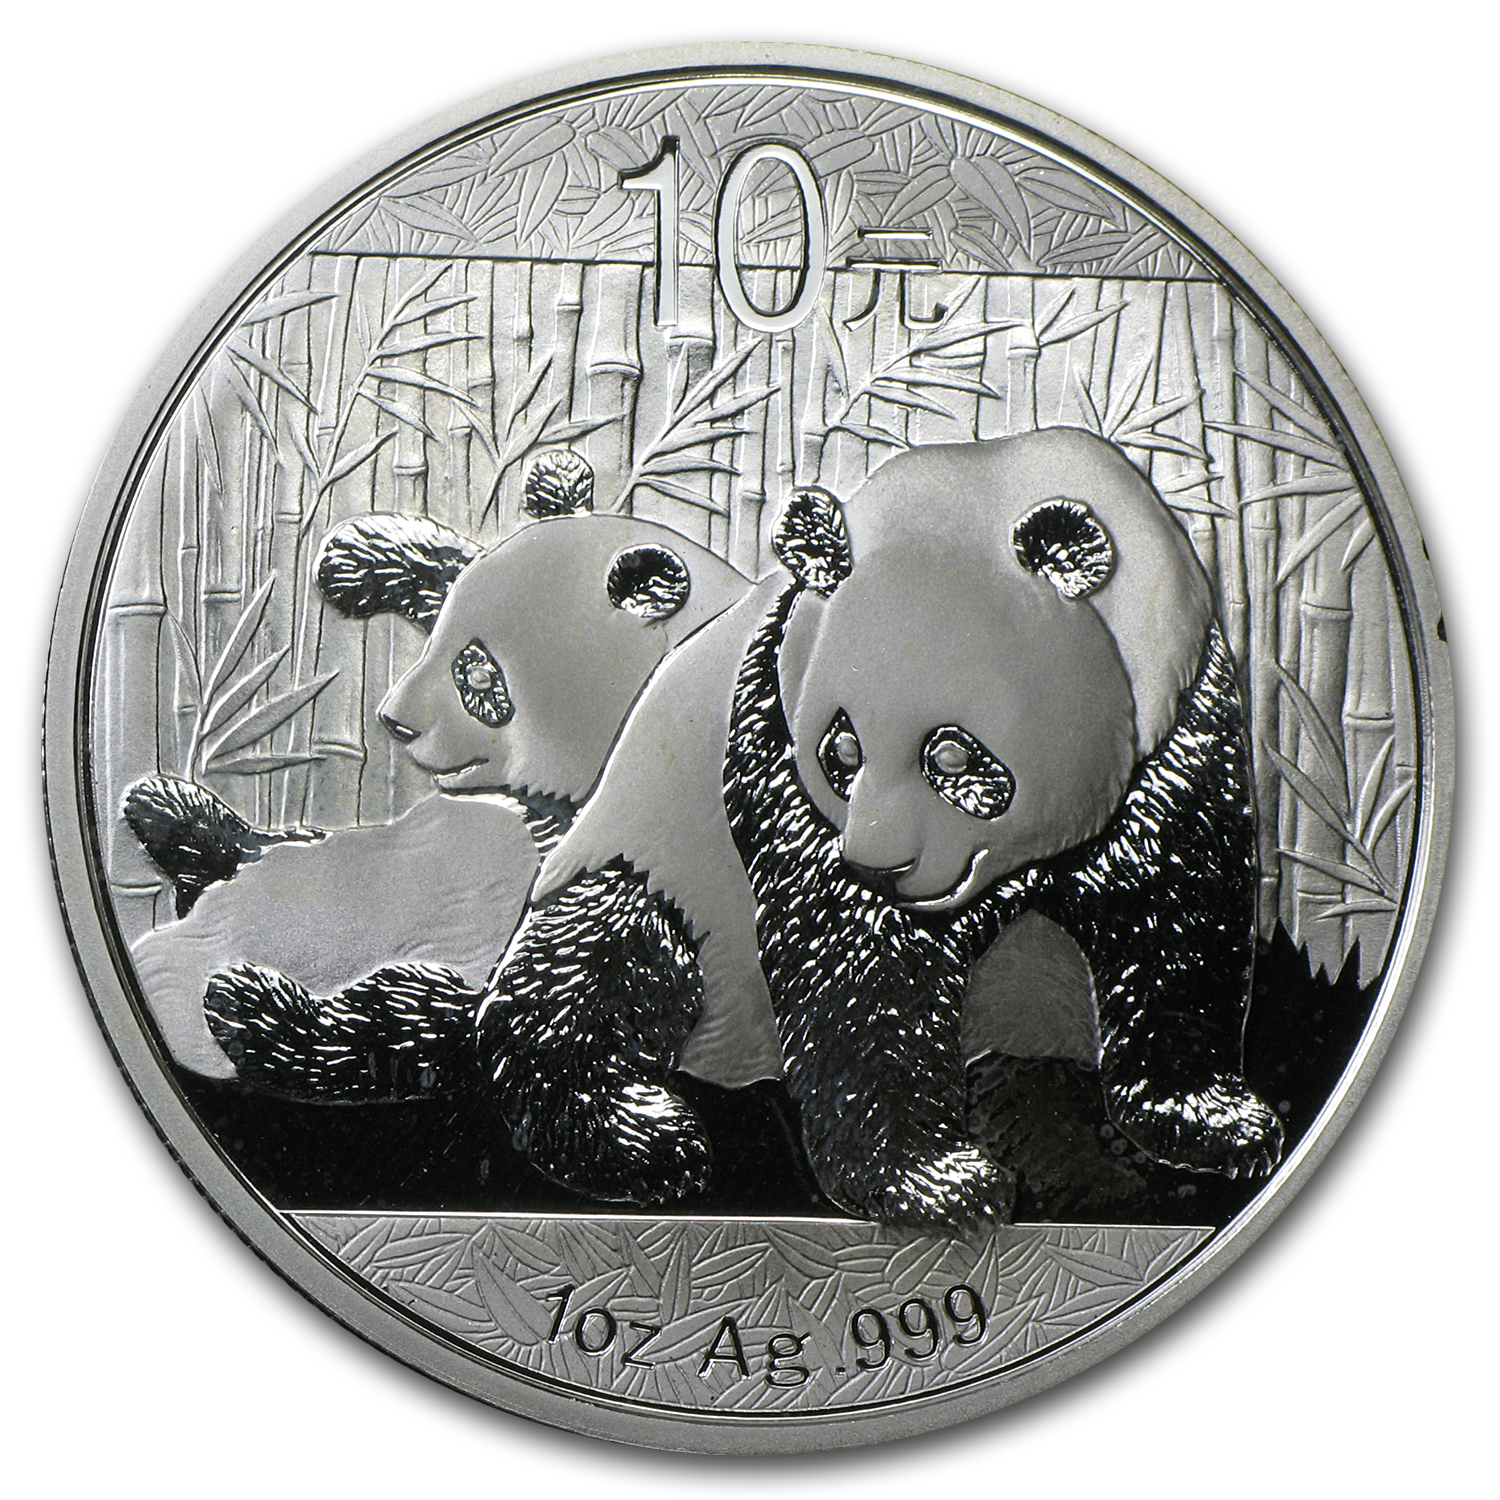 2010 1 oz Silver Chinese Panda - Spotty